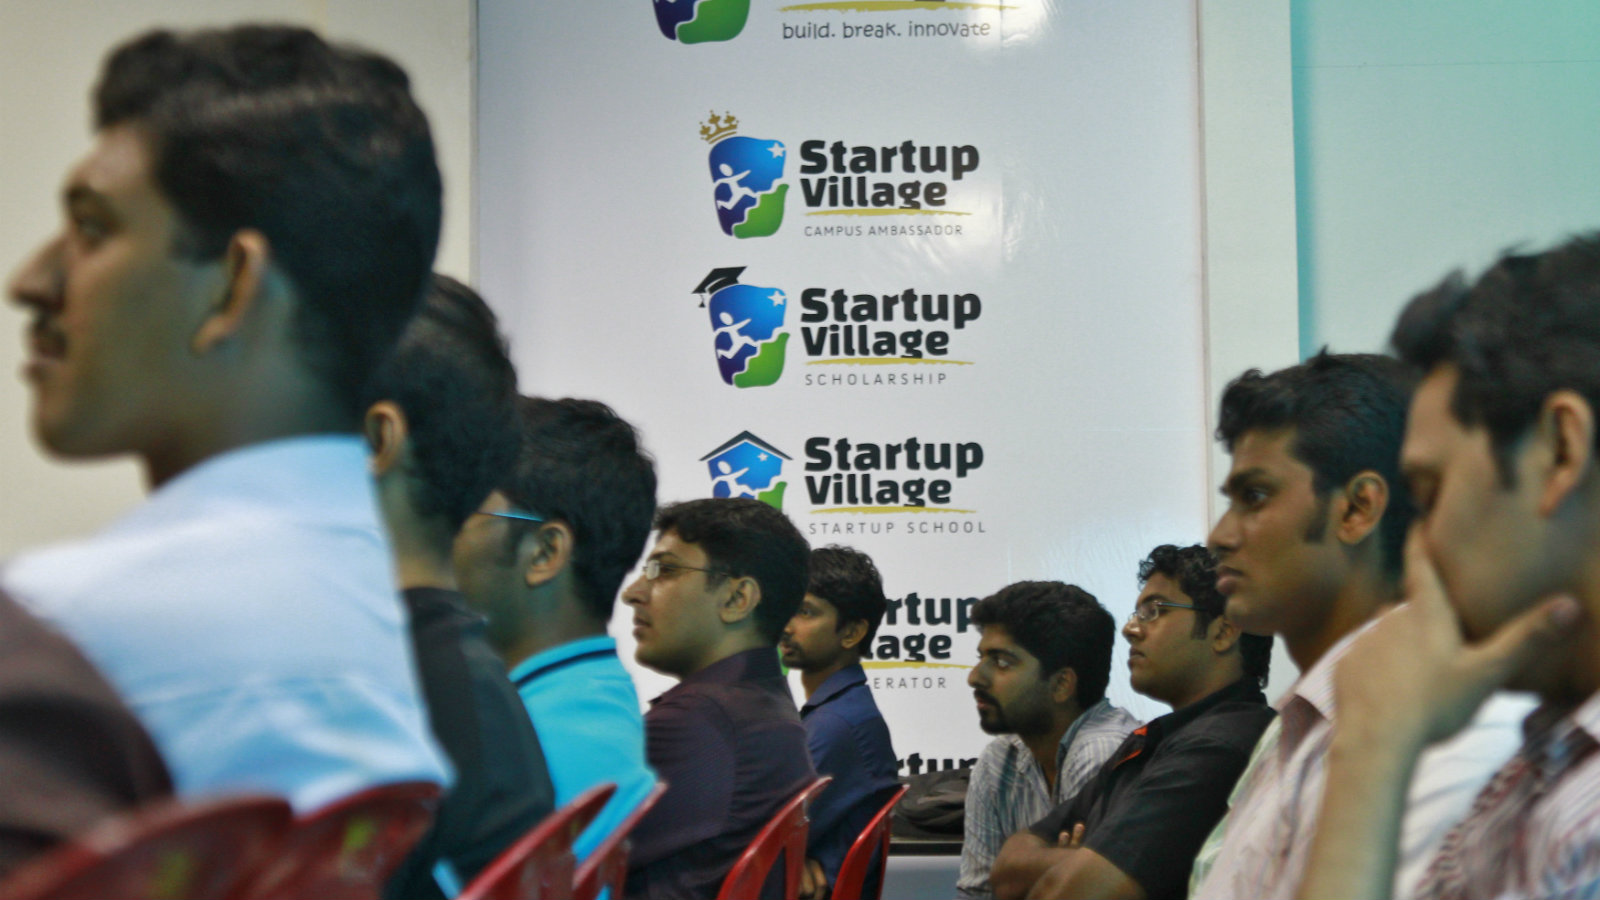 DATE IMPORTED:December 03, 2012Entrepreneurs, employees and students listen to a speech during the Start-up saturday event at the Start-up Village in Kinfra High Tech Park in the southern Indian city of Kochi October 13, 2012. Three decades after Infosys, India's second-largest software service provider, was founded by middle-class engineers, the country has failed to create an enabling environment for first-generation entrepreneurs. Startup Village wants to break the logjam by helping engineers develop 1,000 Internet and mobile companies in the next 10 years. It provides its members with office space, guidance and a chance to hobnob with the stars of the tech industry. But critics say this may not even be the beginning of a game-changer unless India deals with a host of other impediments - from red tape to a lack of innovation and a dearth of investors - that are blocking entrepreneurship in Asia's third-largest economy. To match Feature INDIA-TECHVILLAGE/ Picture taken October 13, 2012.